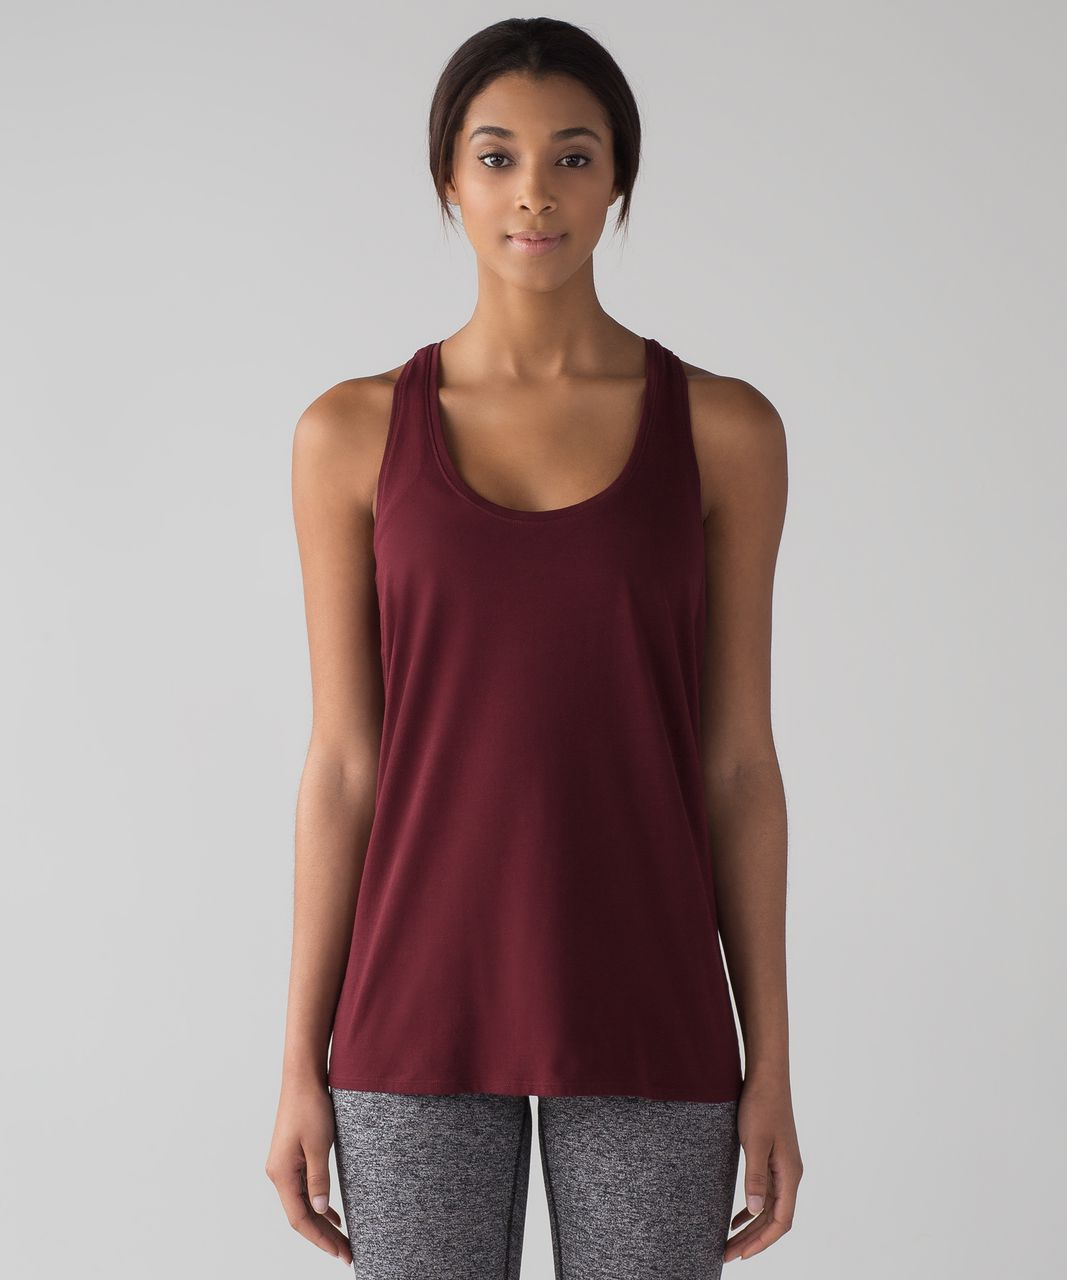 Lululemon Love Tank - Deep Rouge